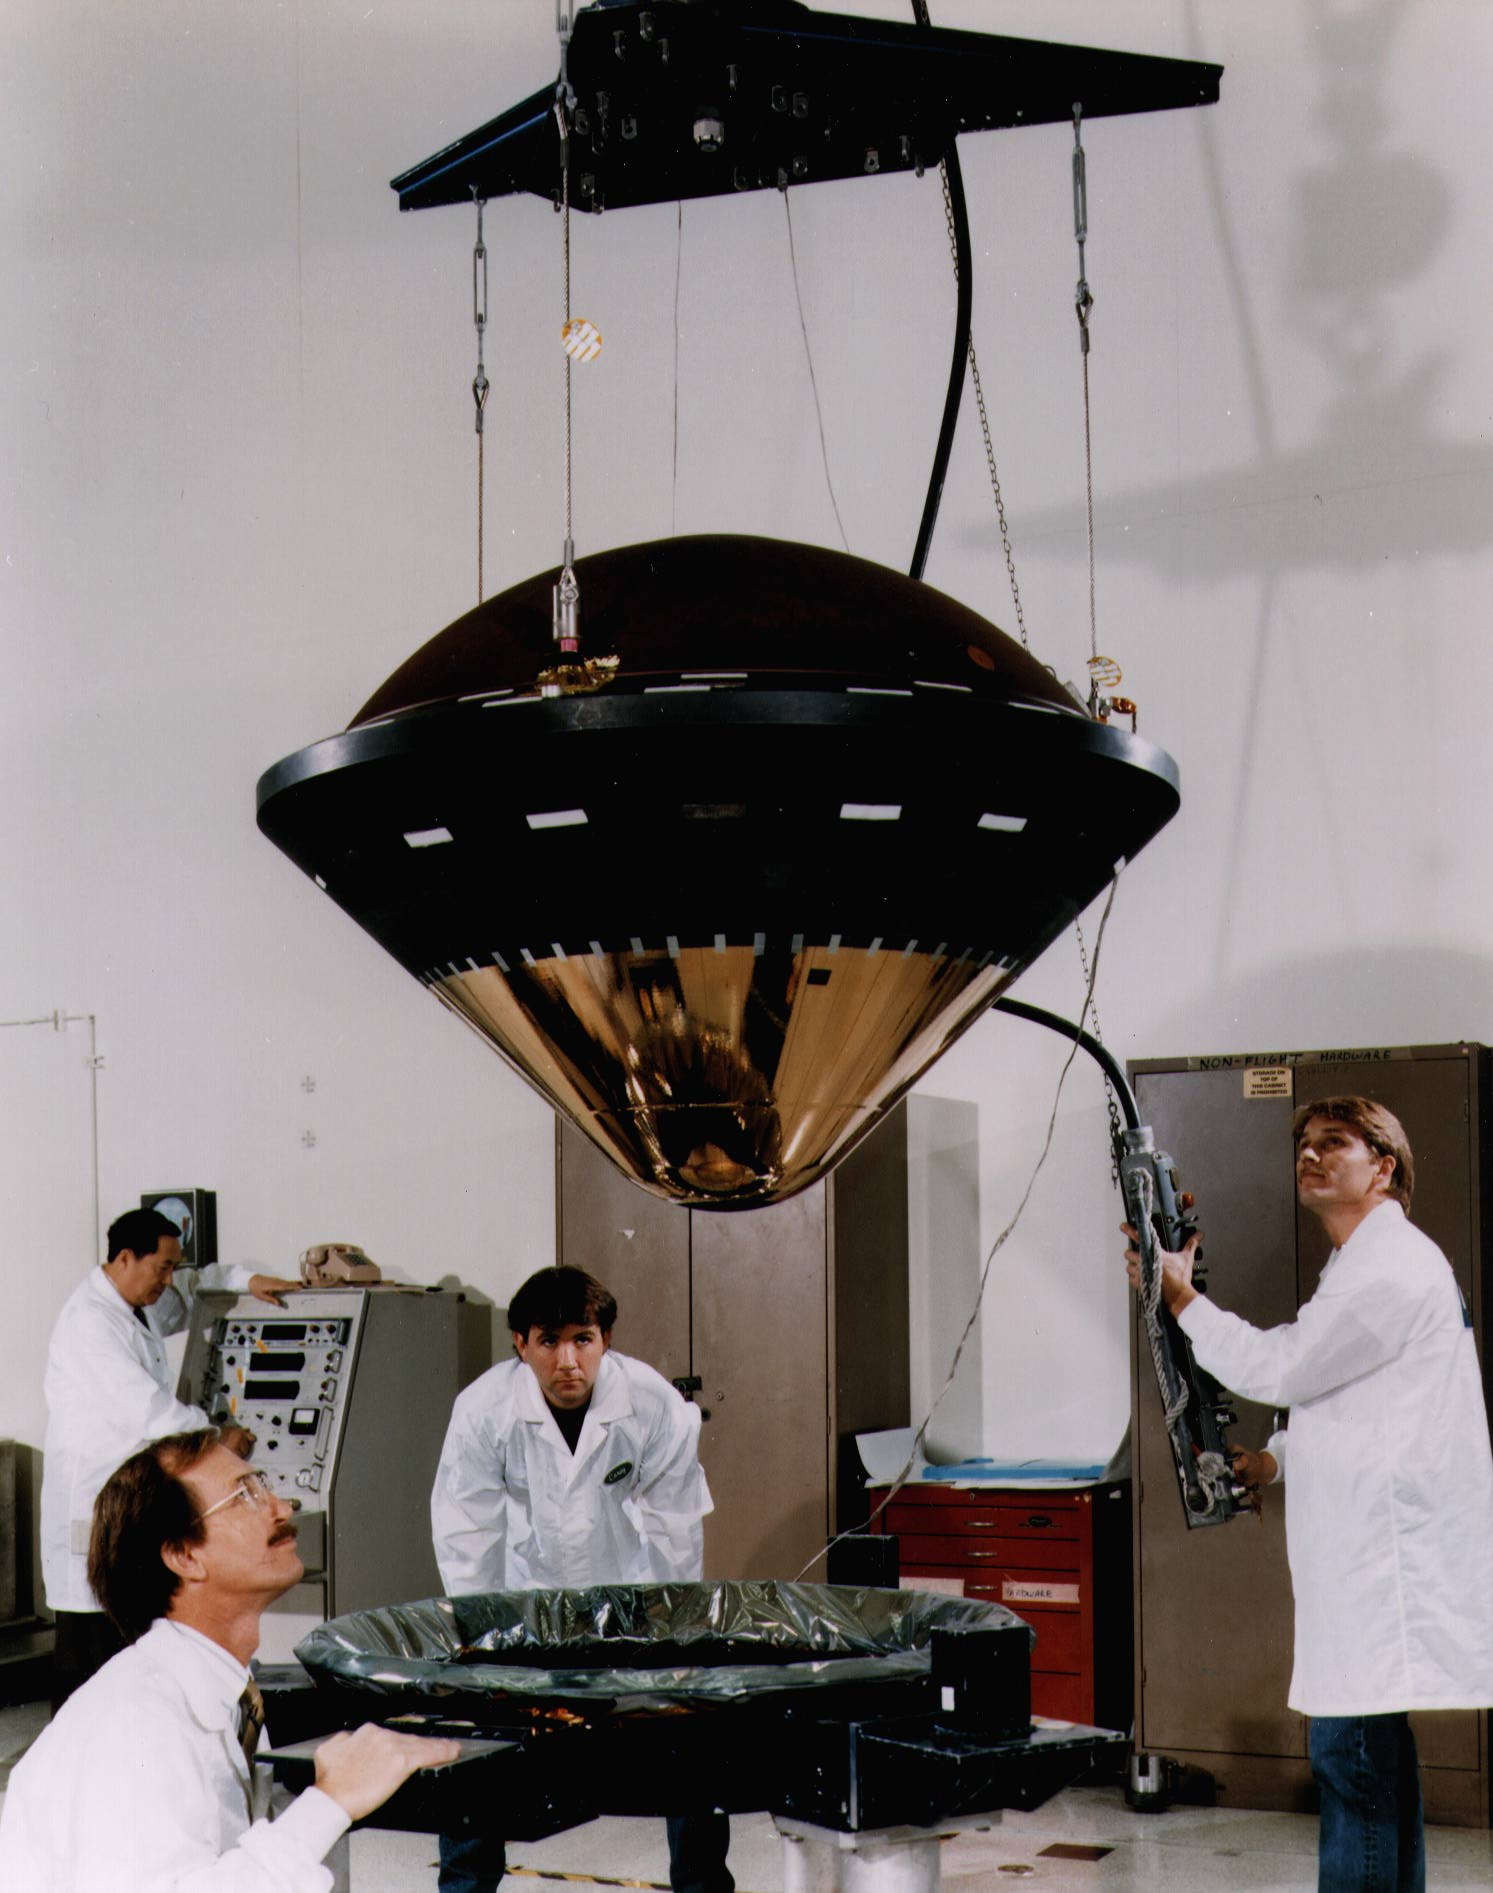 nasa galileo probe - photo #20